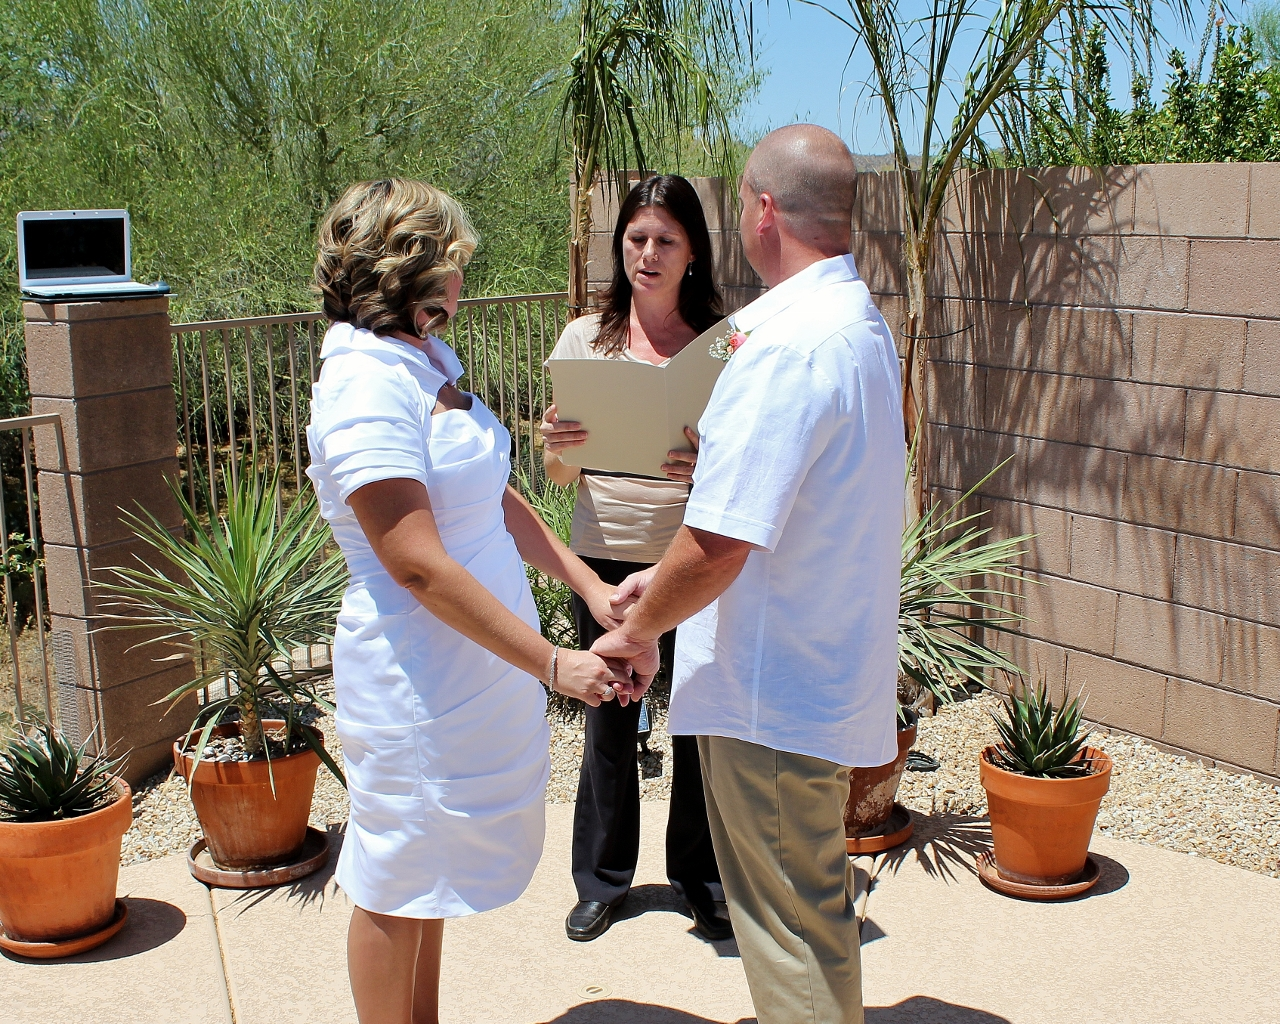 tucson wedding officiant, minister